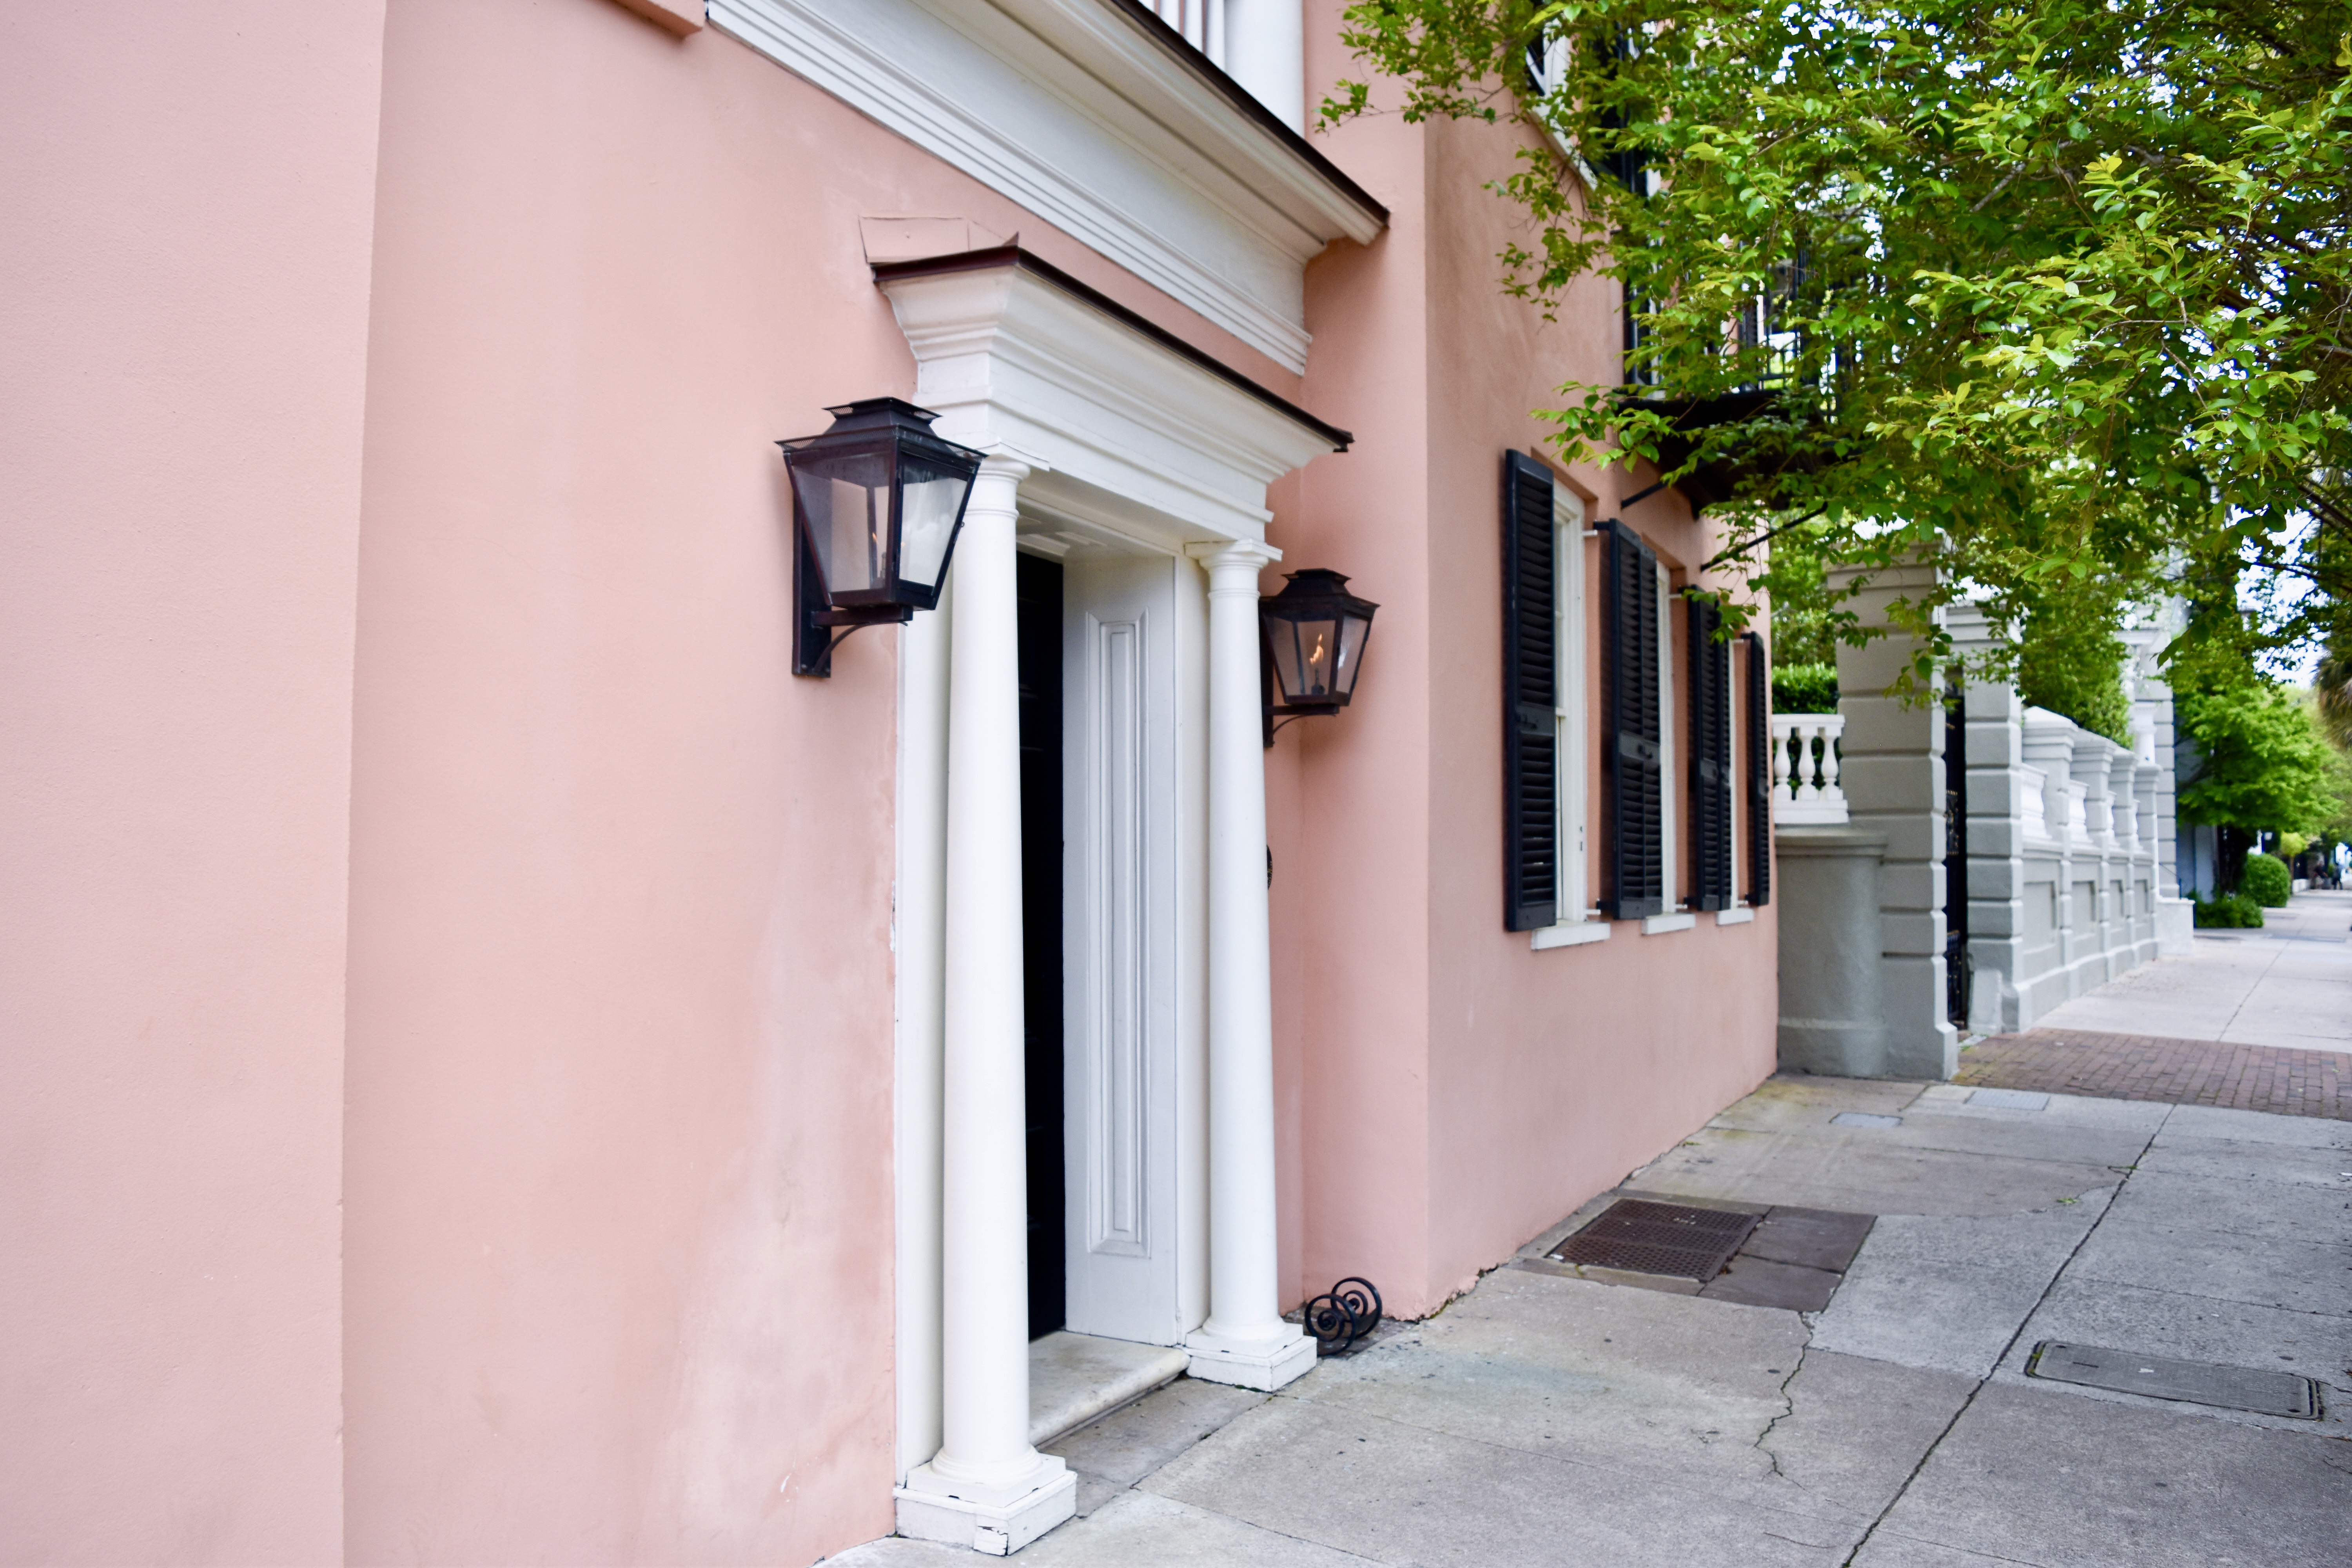 47 E Bay Street, Charleston, SC Coral House Pink House 11